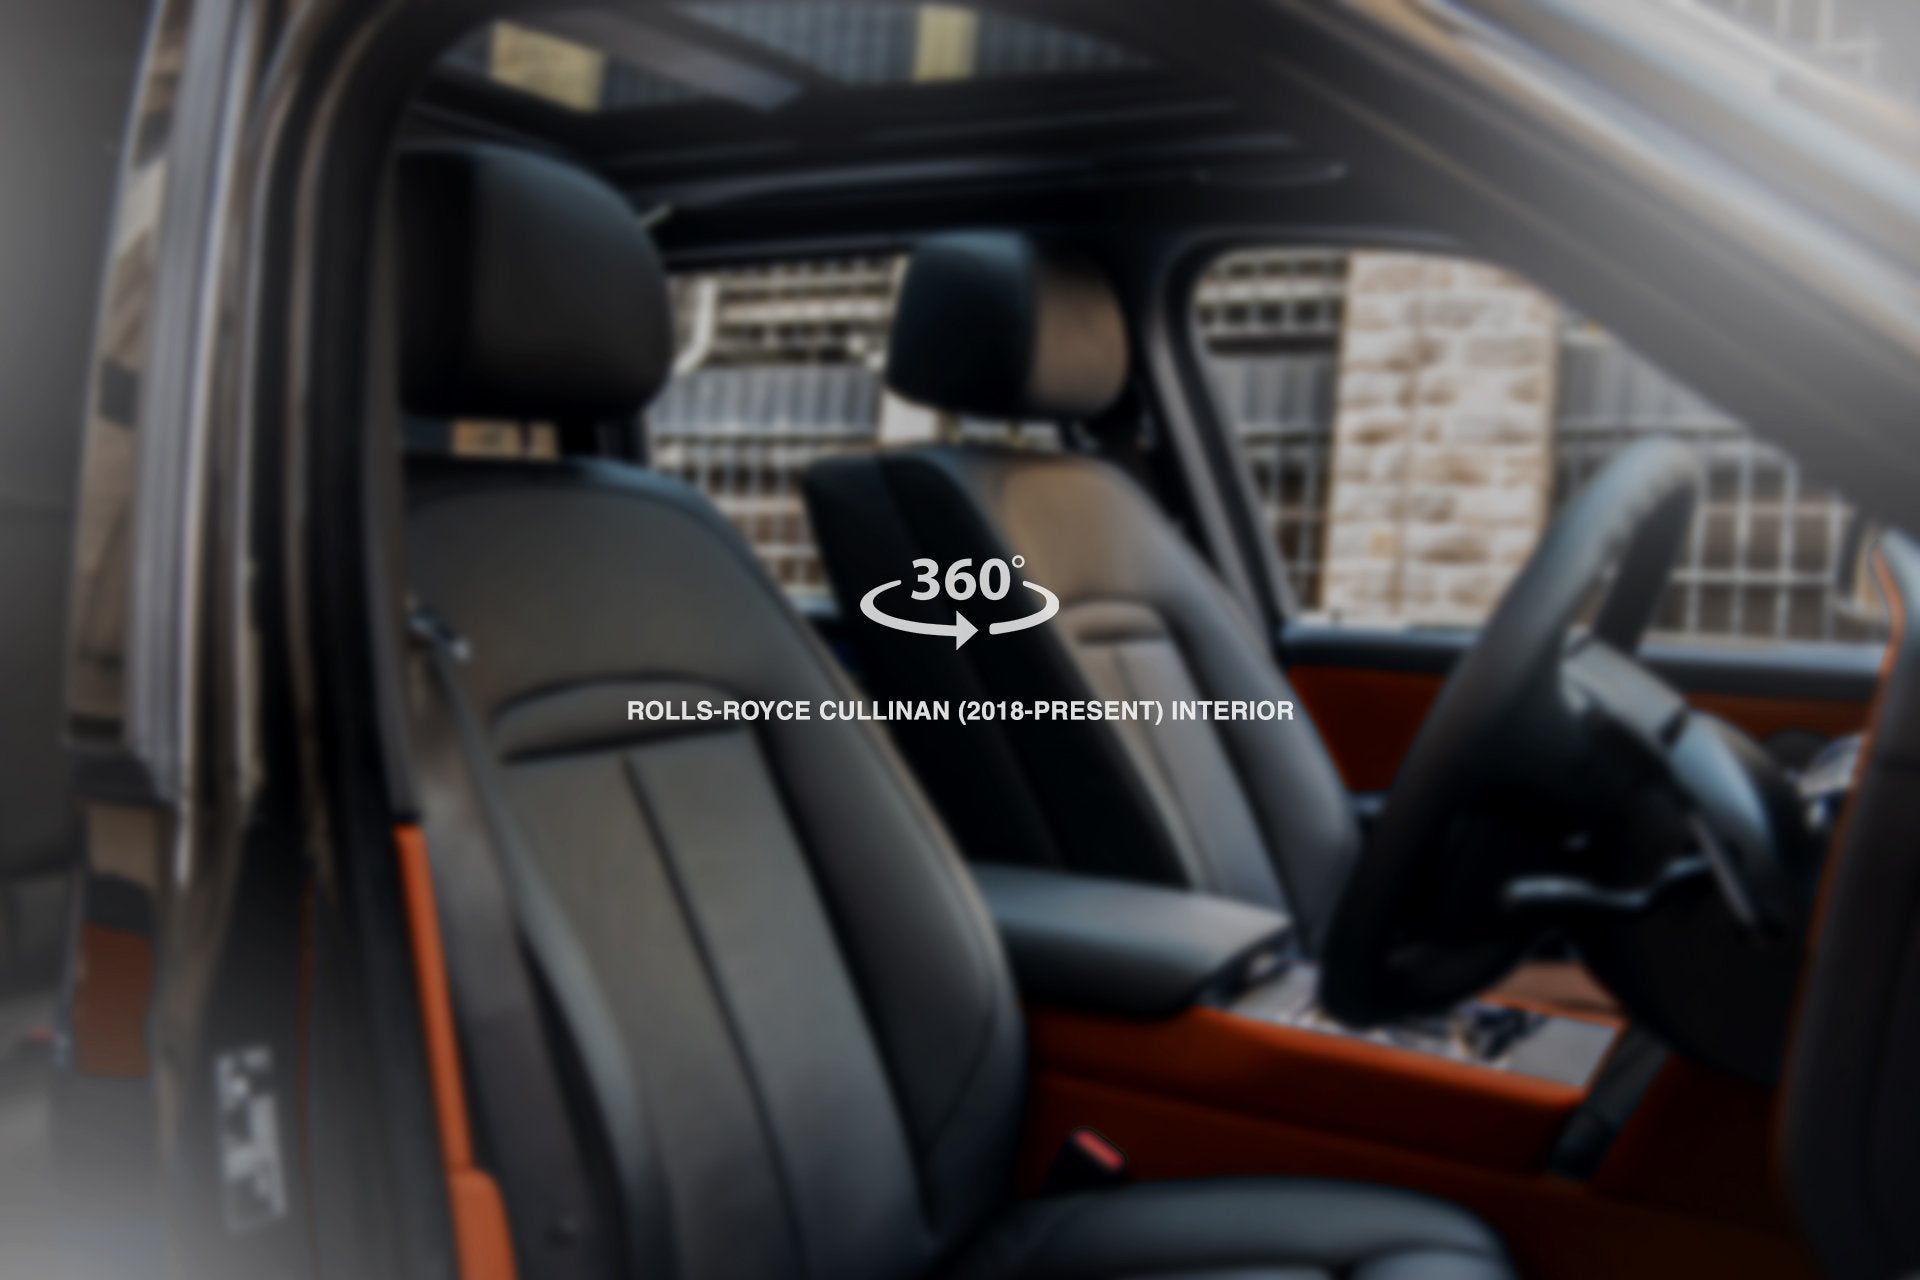 Rolls-Royce Cullinan (2018-Present) Bespoke Orange Interior by Kahn - Image 1615